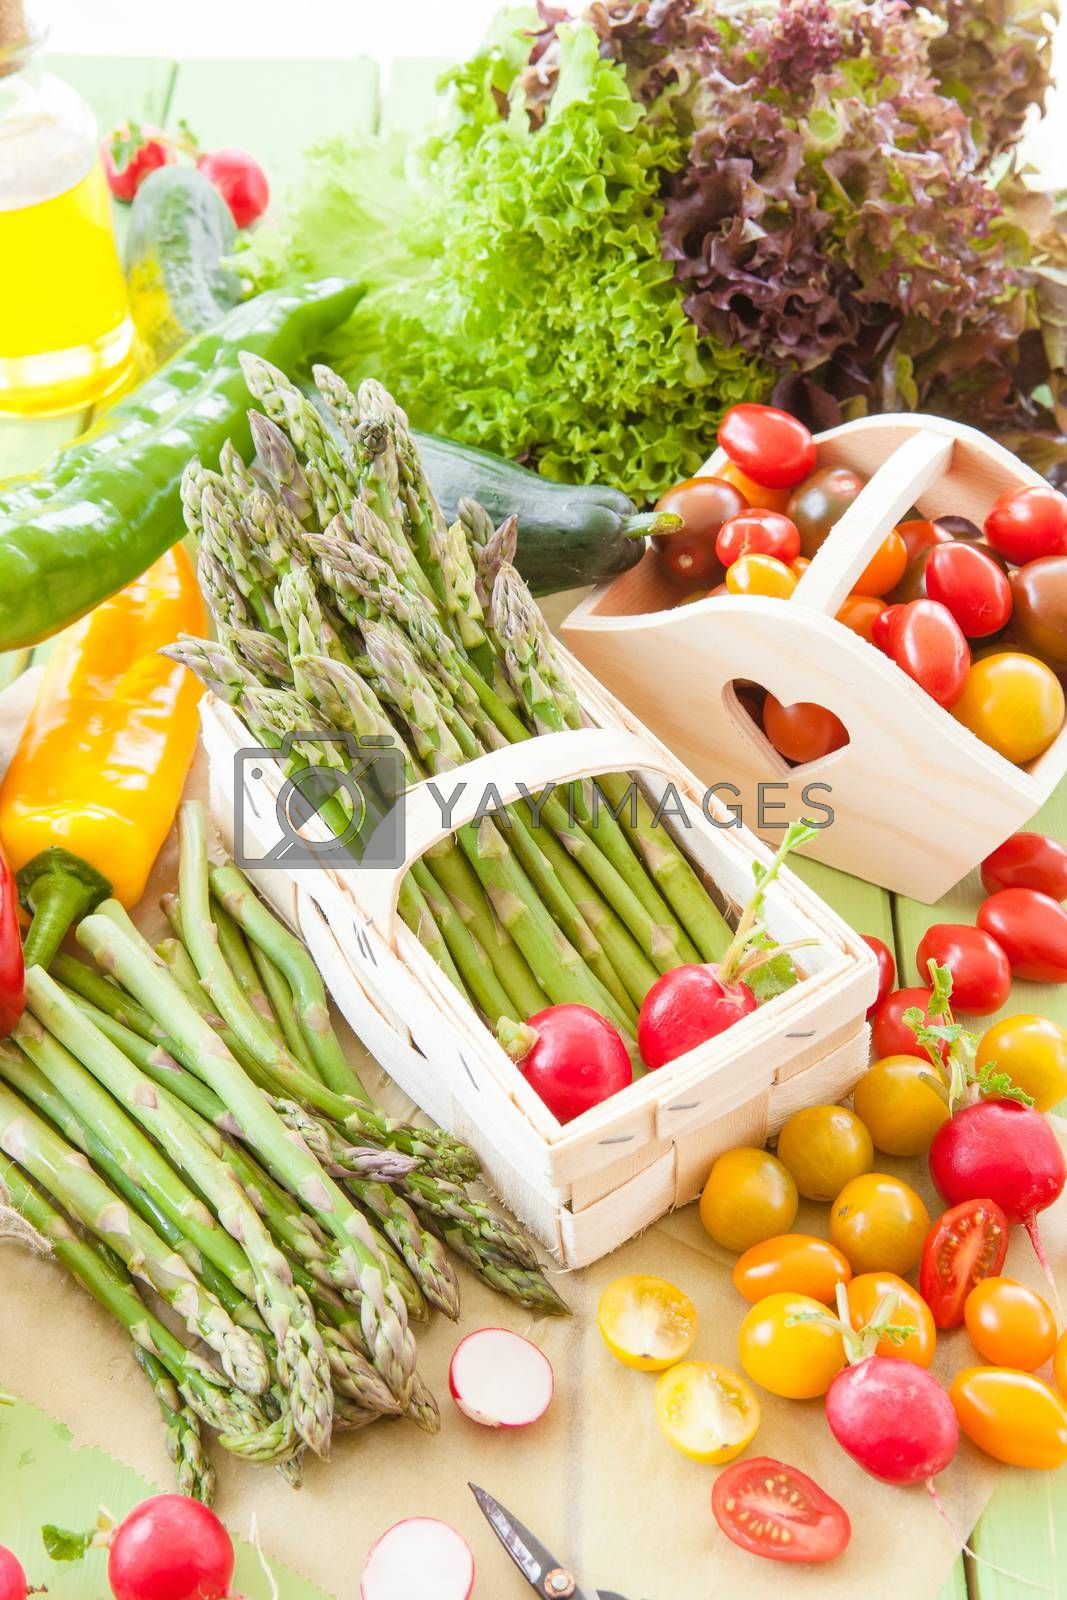 Green asparagus and other fresh vegetables by BarbaraNeveu